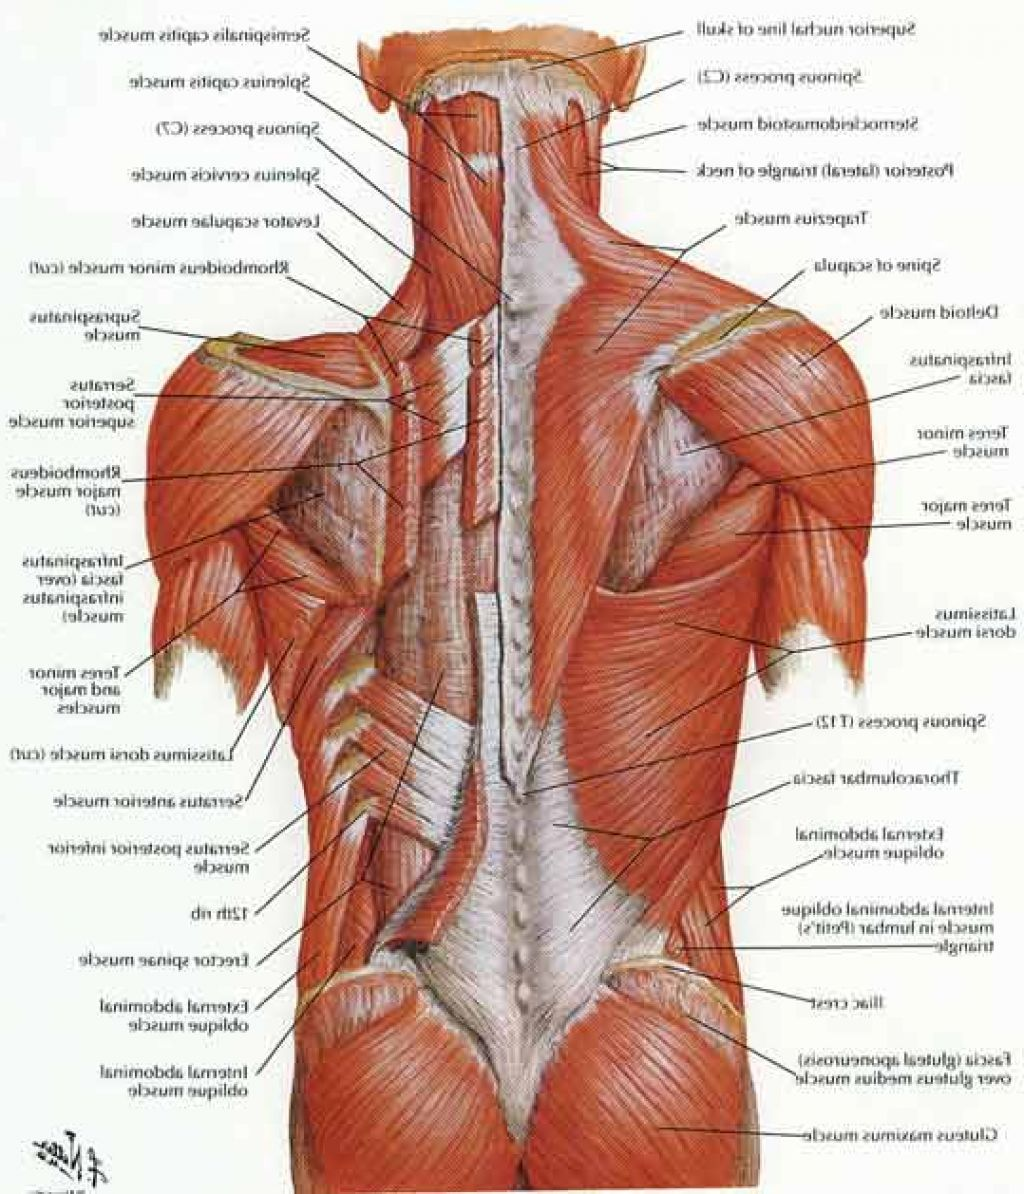 Lower Back Muscles | ANATOMY OF BACK MUSCLES 1 | Pinterest